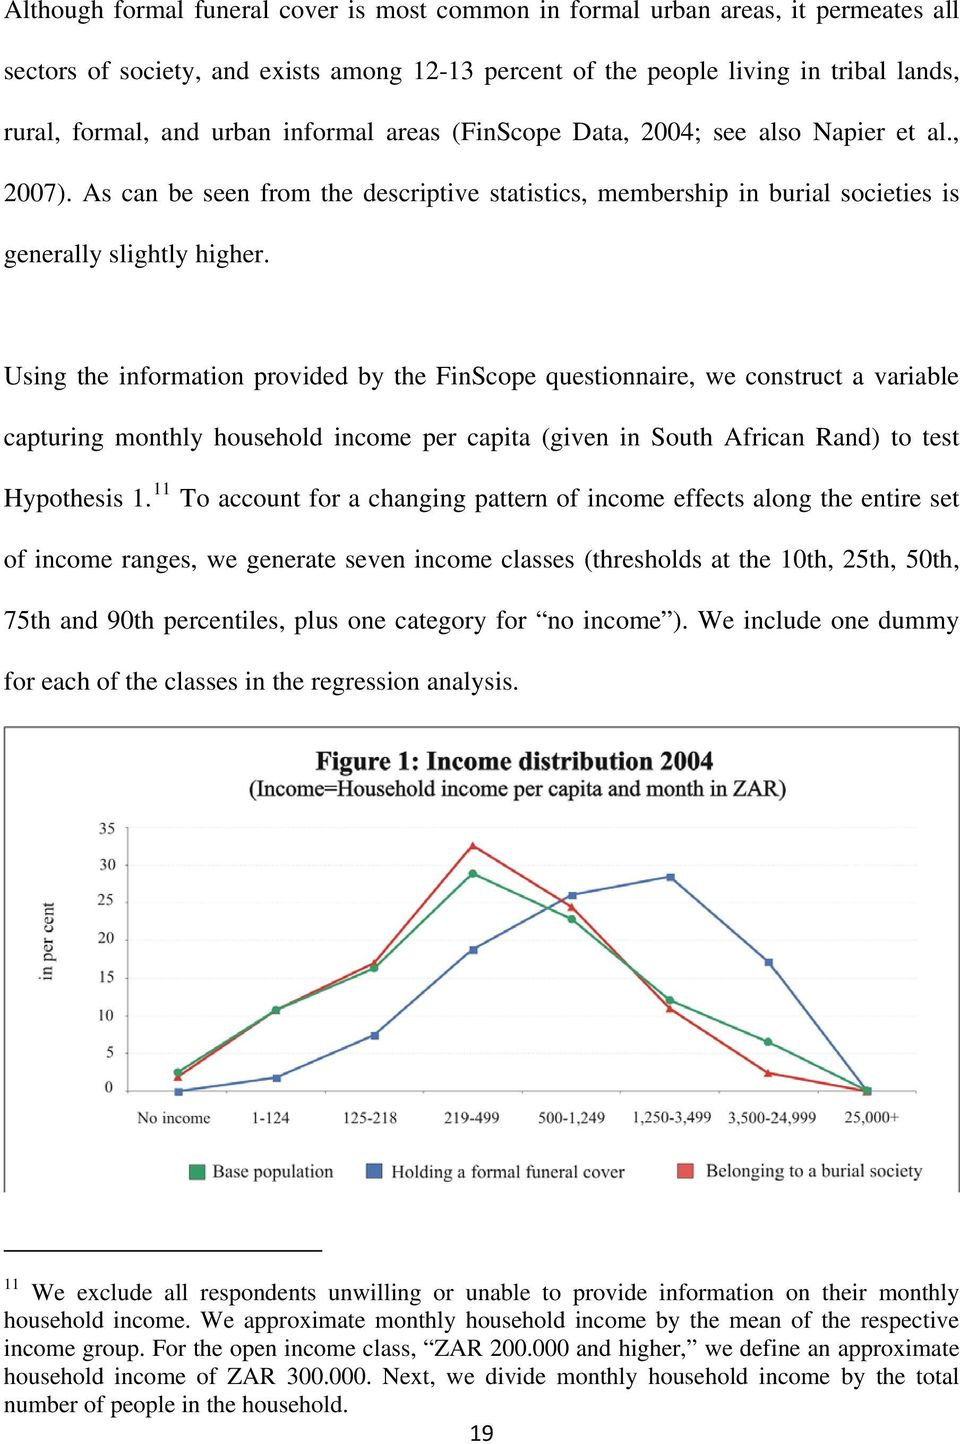 Using the information provided by the FinScope questionnaire, we construct a variable capturing monthly household income per capita (given in South African Rand) to test Hypothesis 1.